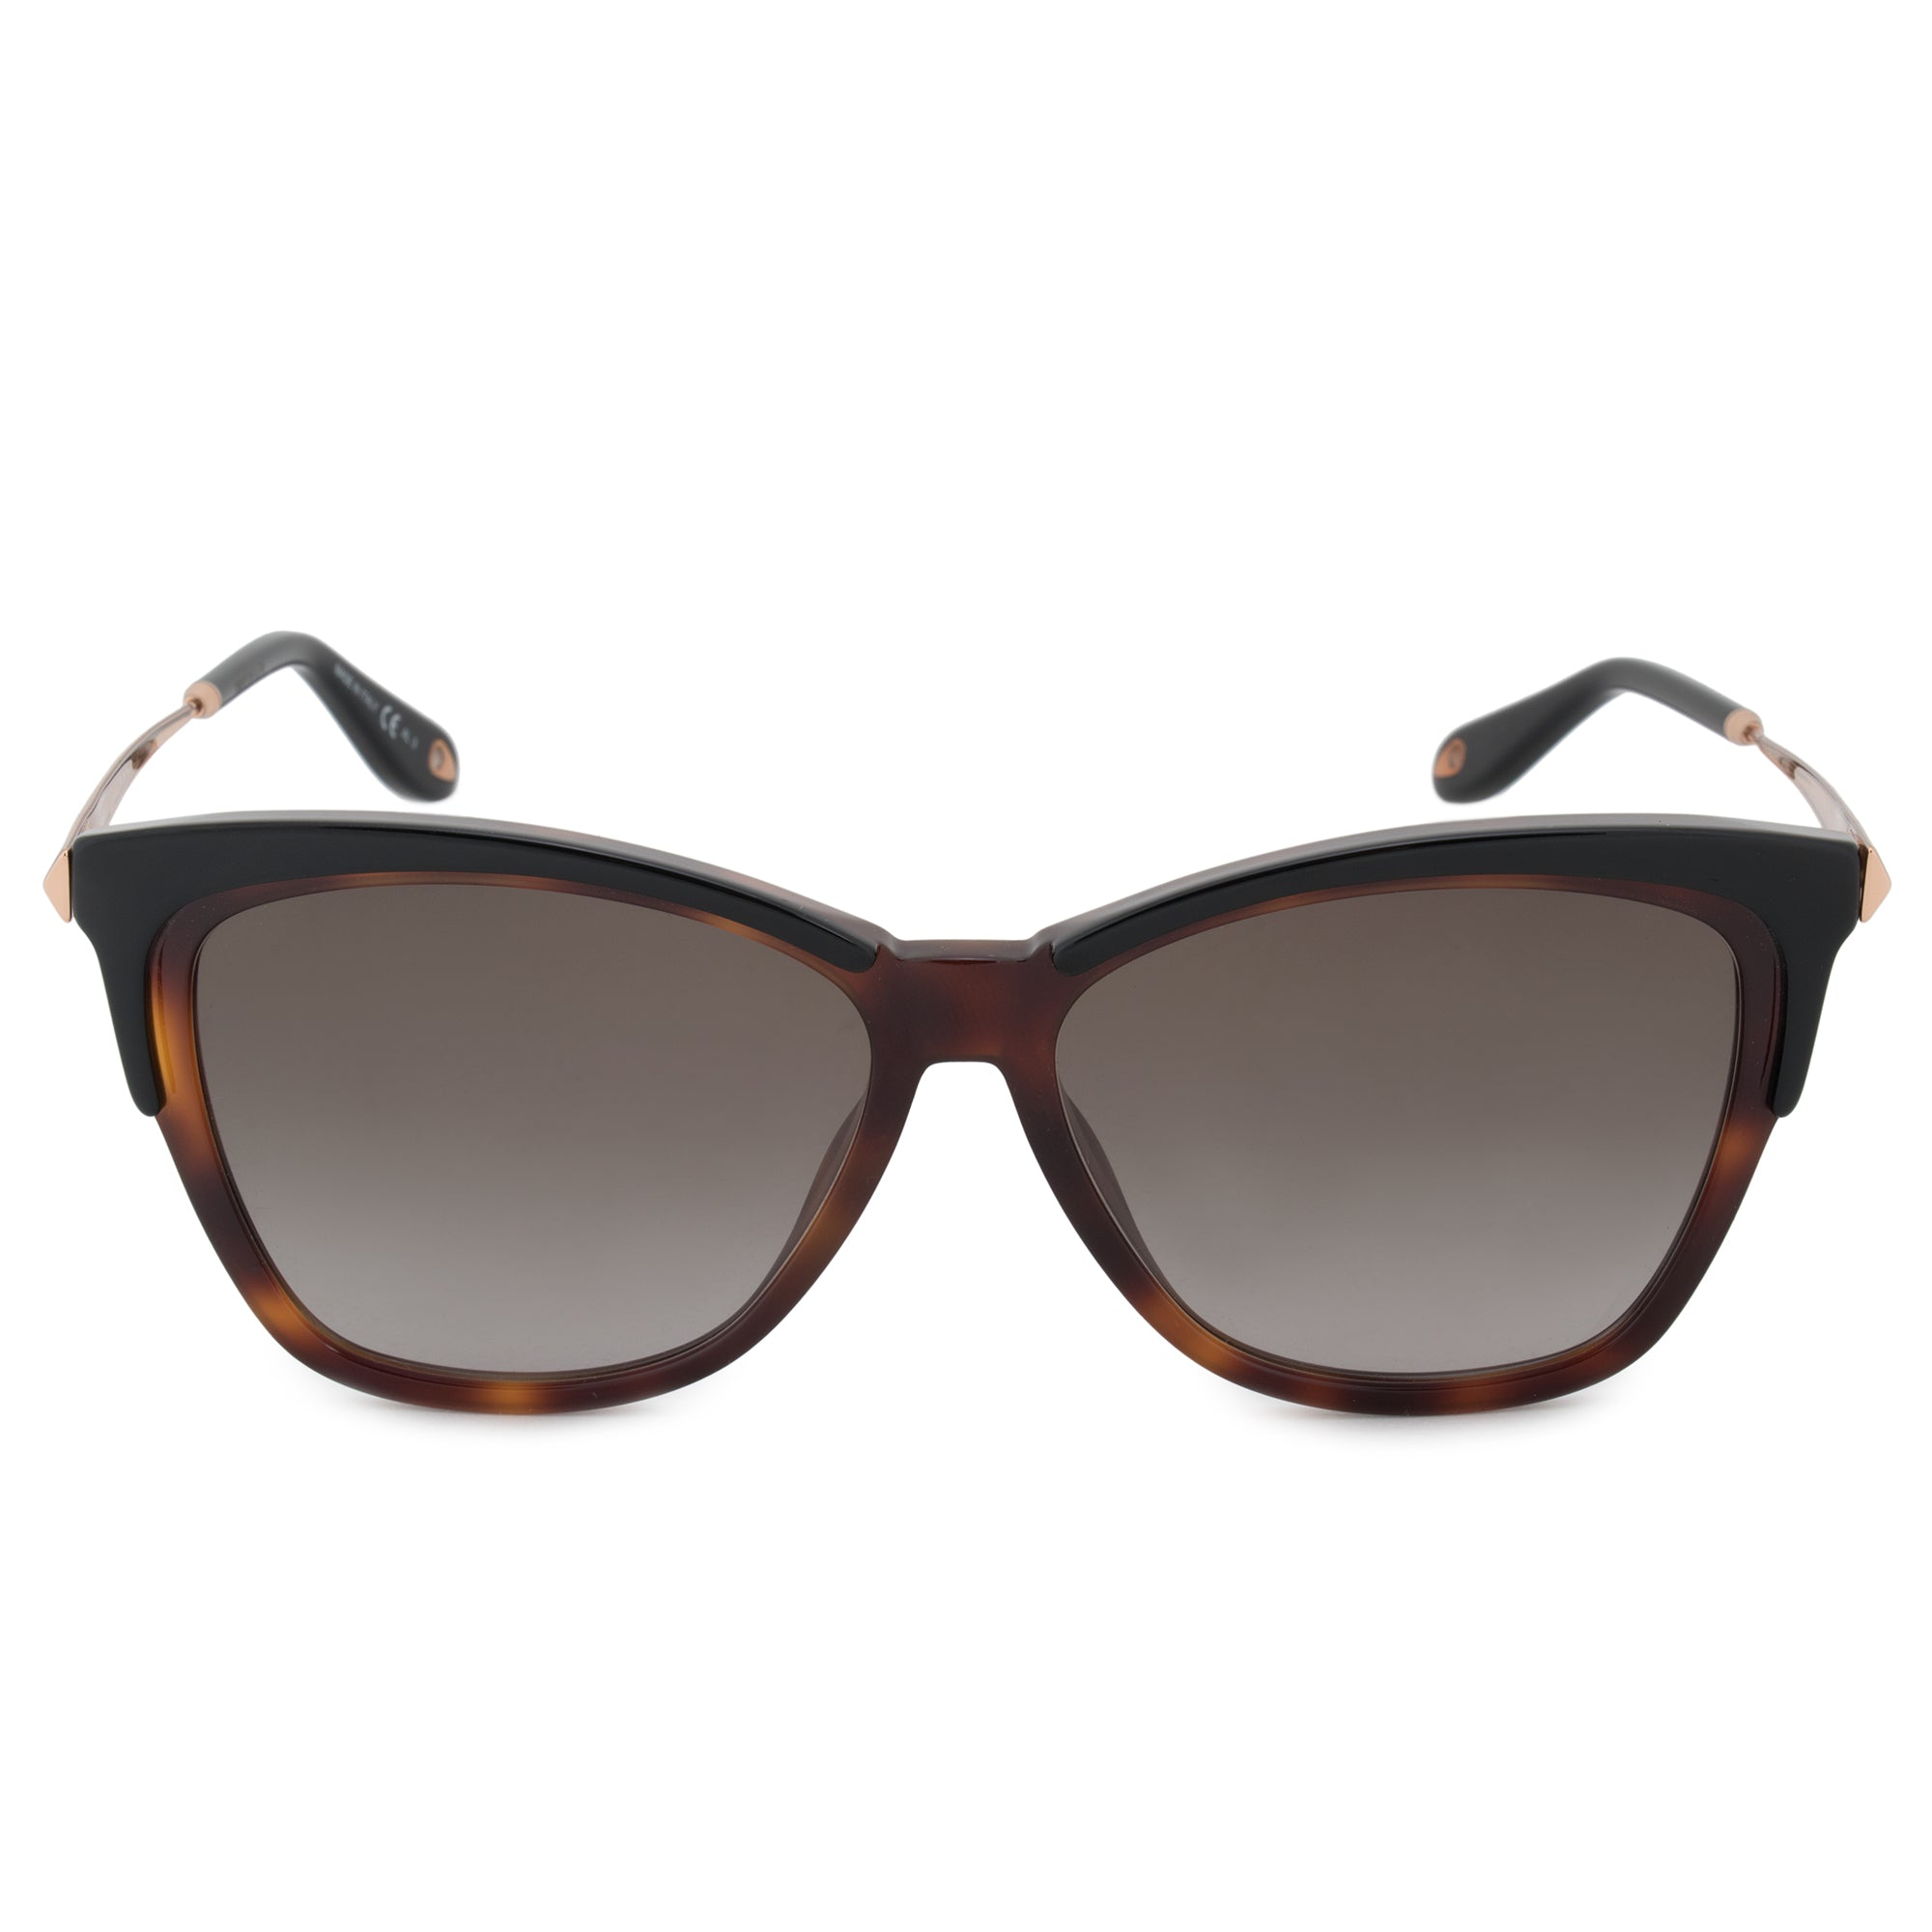 Givenchy Cat Eye Sunglasses GV7071/S WR7 HA 57